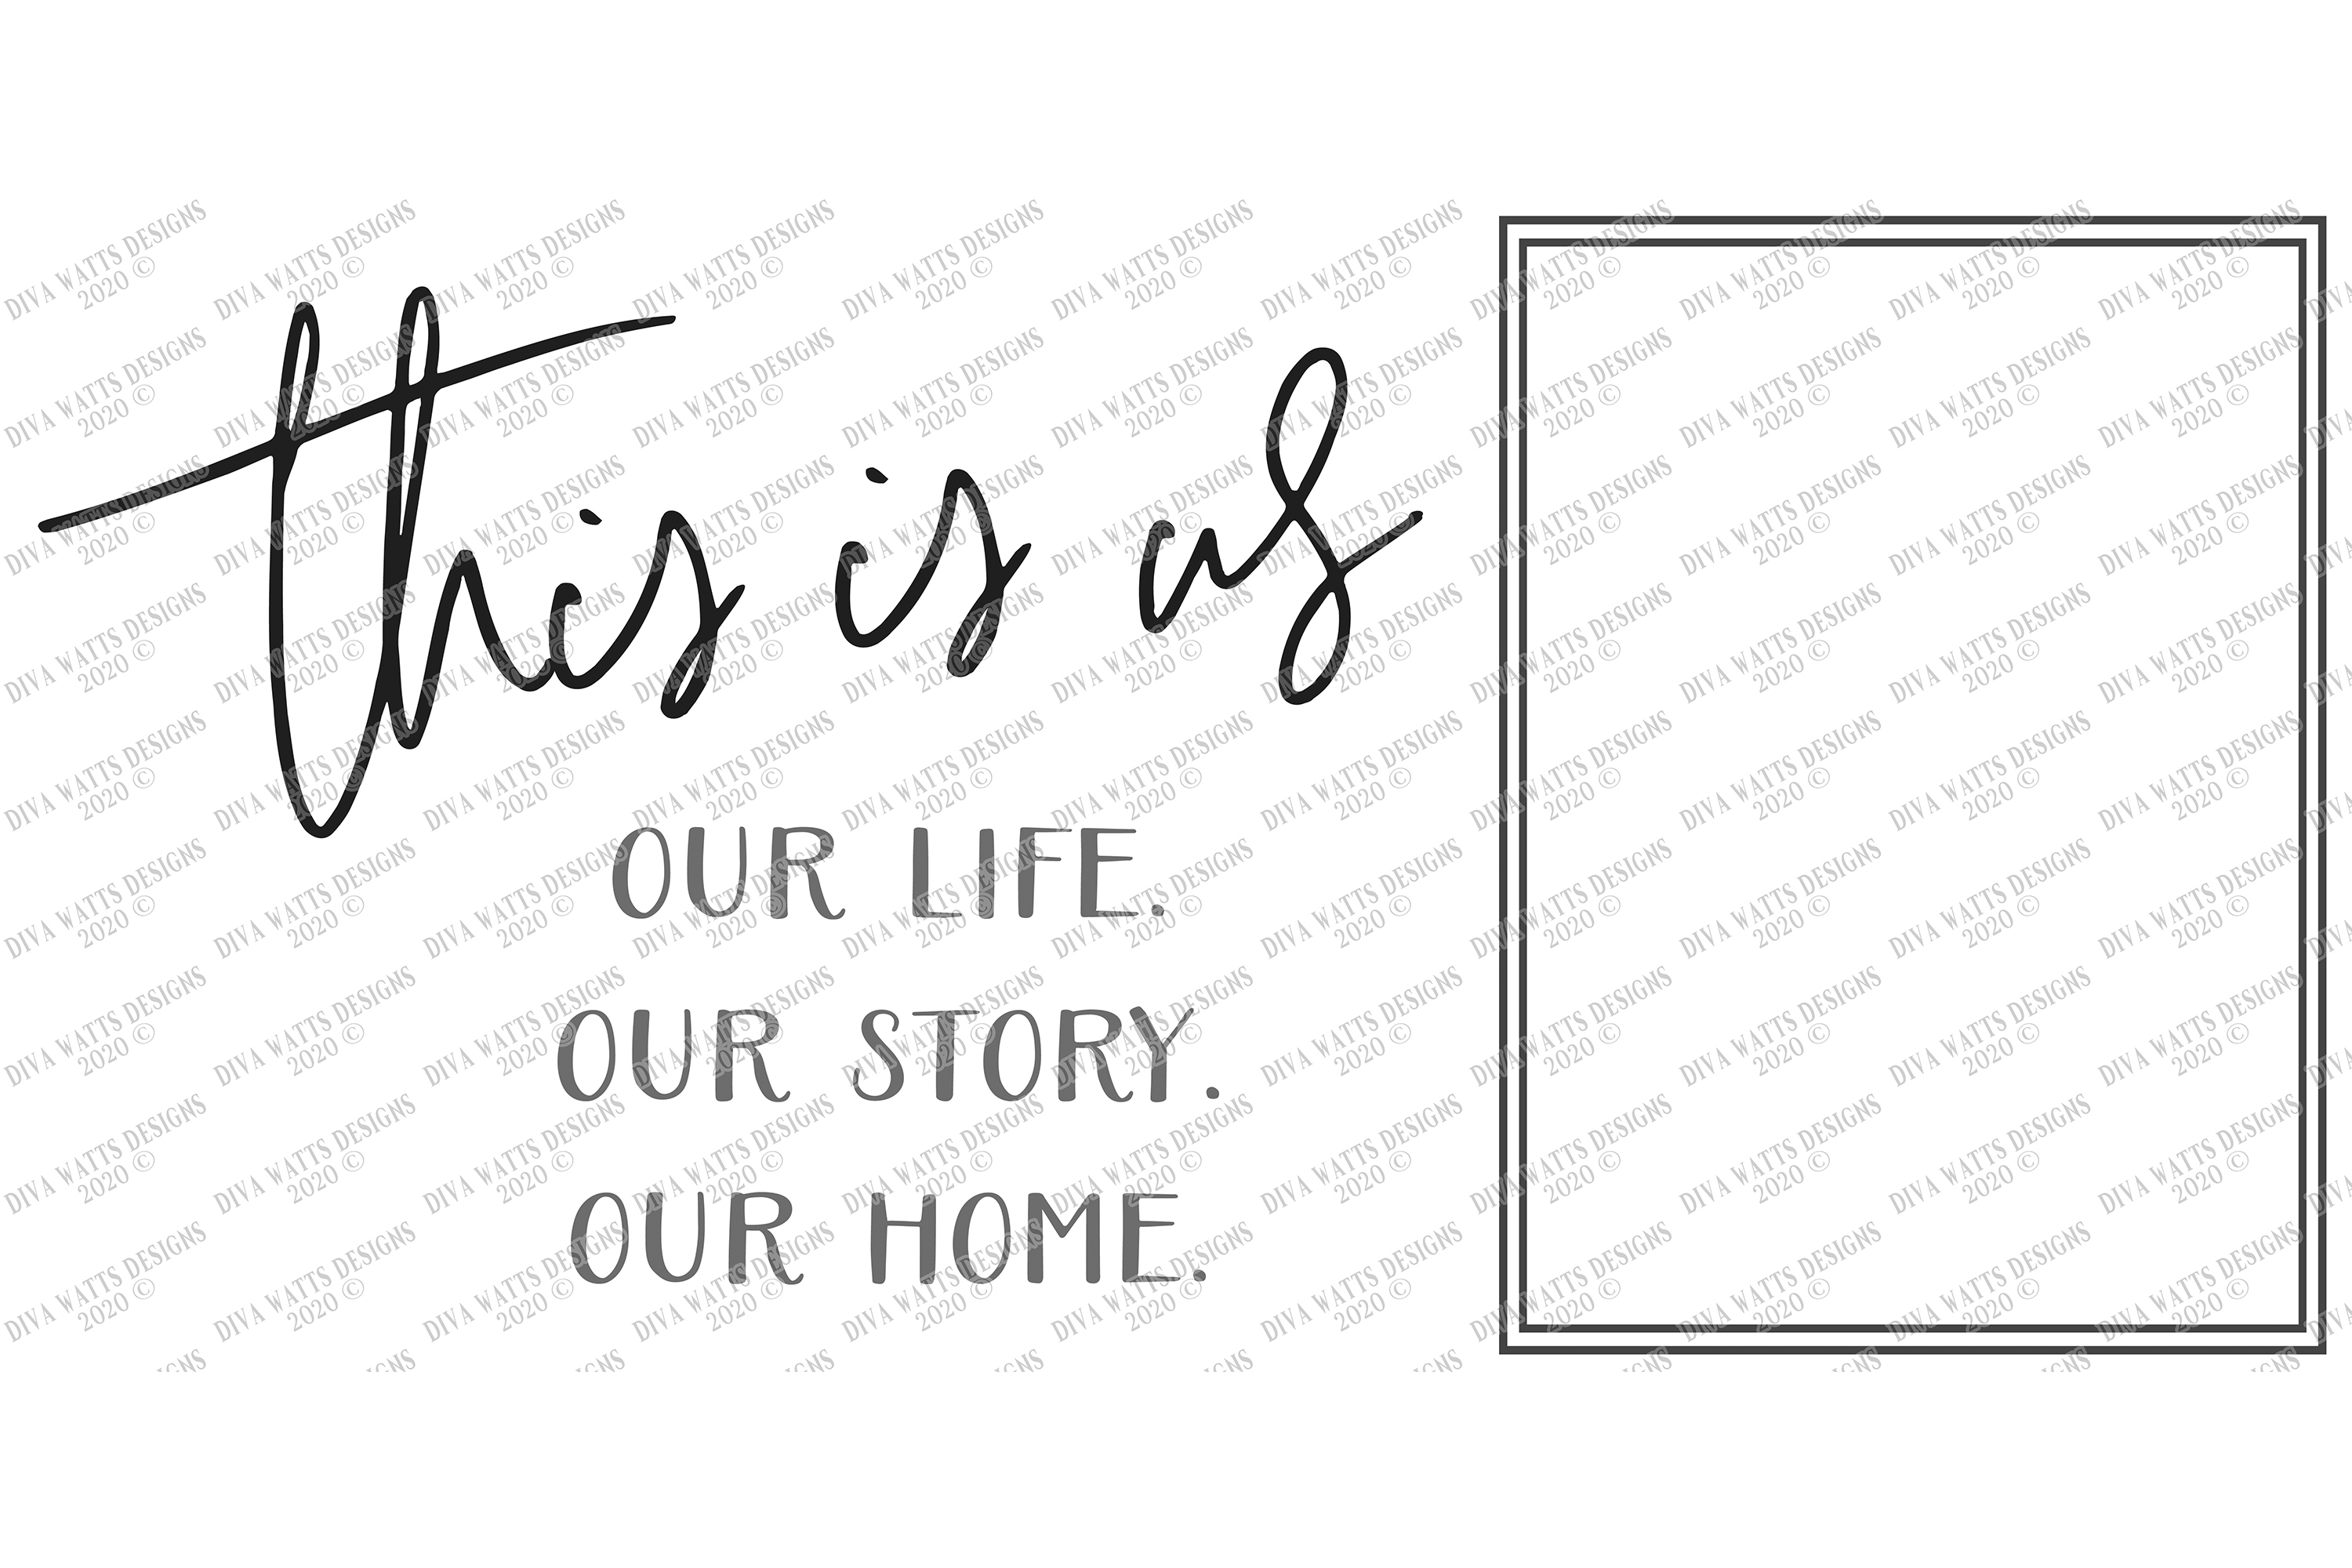 This Is Us - Our Life Our Story Our Home - Customize SVG EPS example image 2